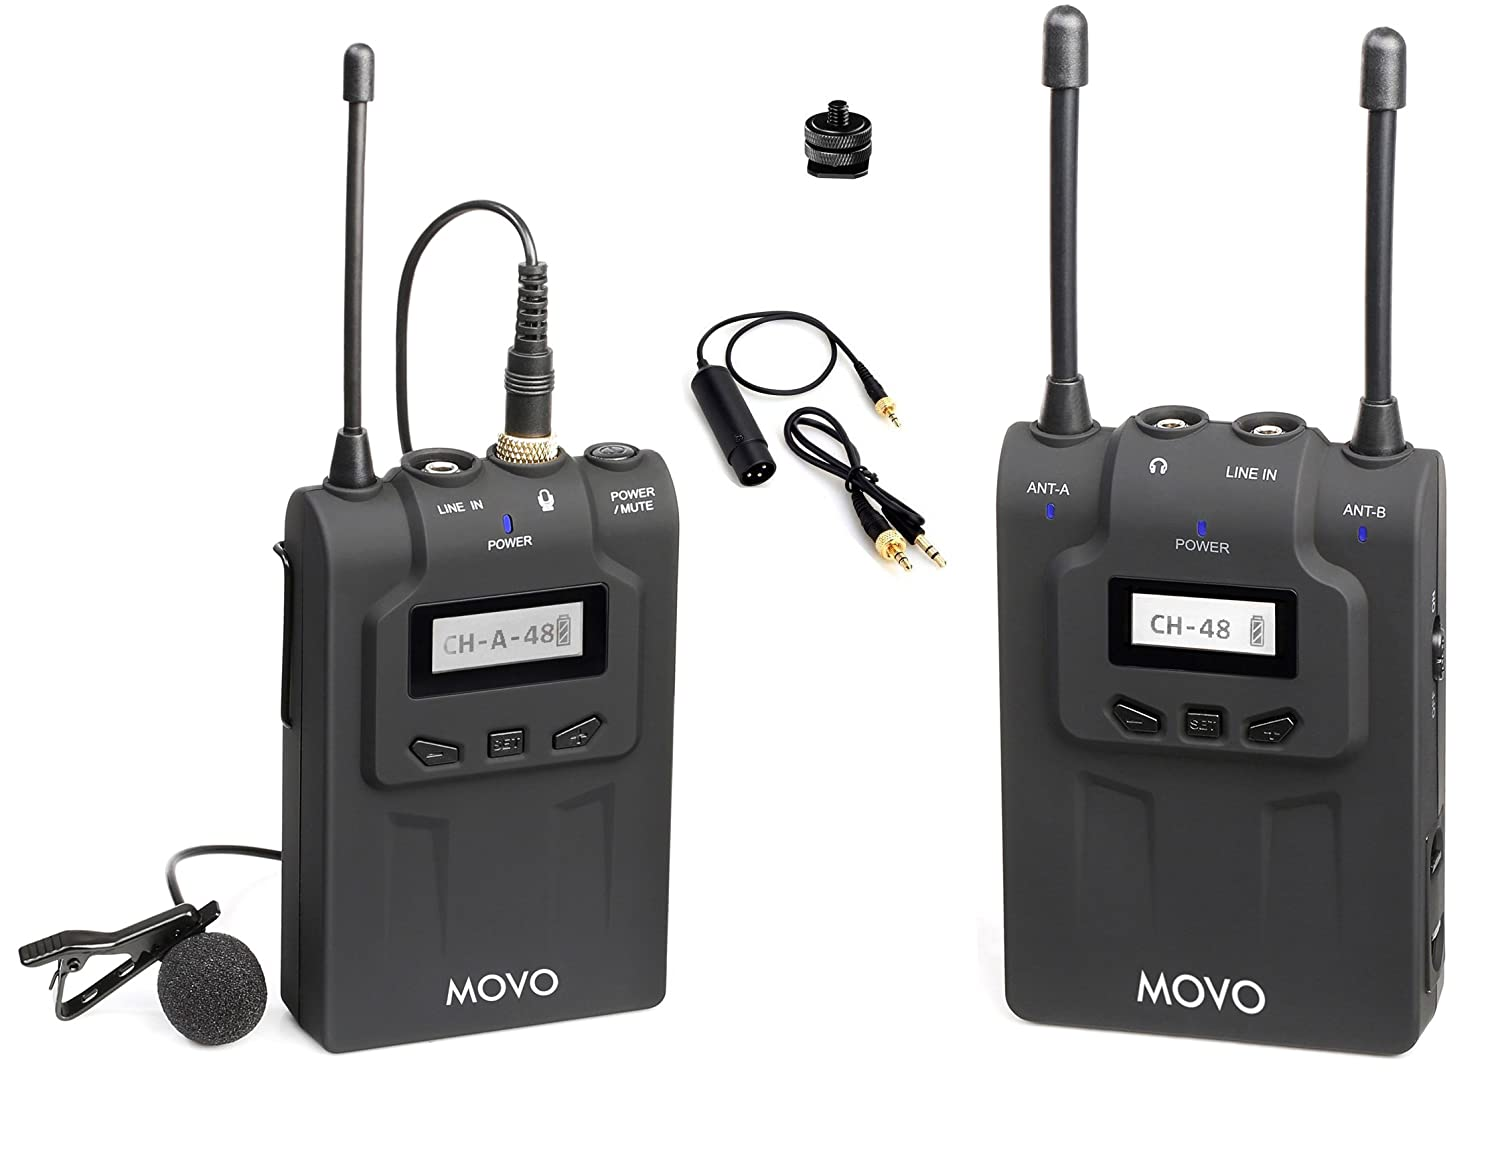 Movo WMIC80 UHF Expandable Wireless Lavalier Microphone System with Lavalier Mic & Bodypack Transmitter, Portable Receiver, Shoe Mount for DSLR Cameras (330' Range) WMIC80TR